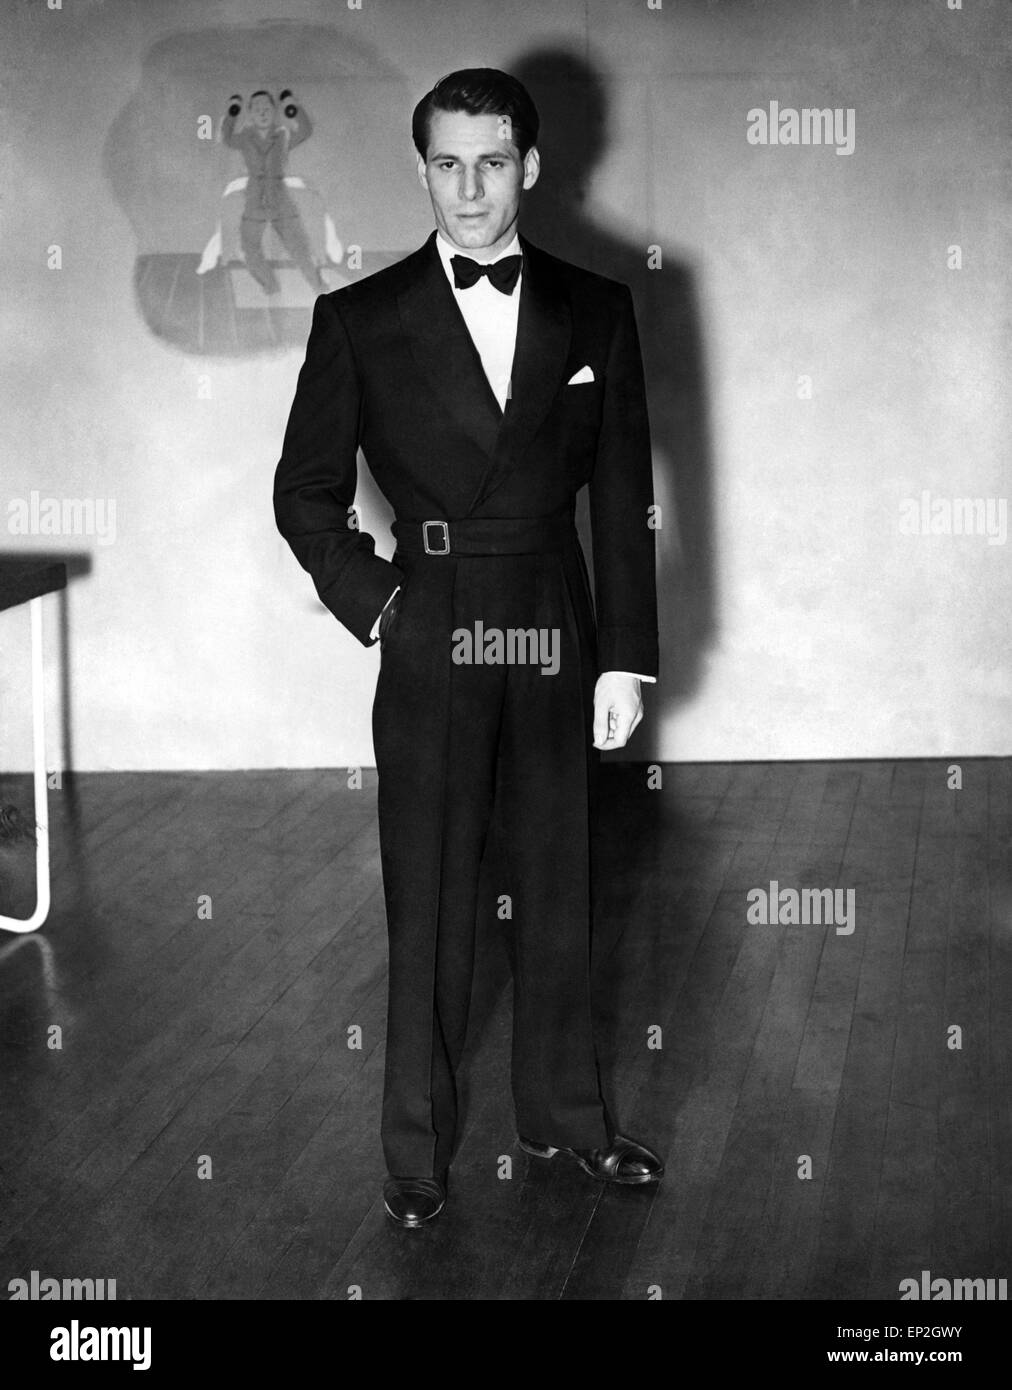 Clothing Fashion Menswear Dinner And Eveningwear Exhibition Of Stock Photo Alamy